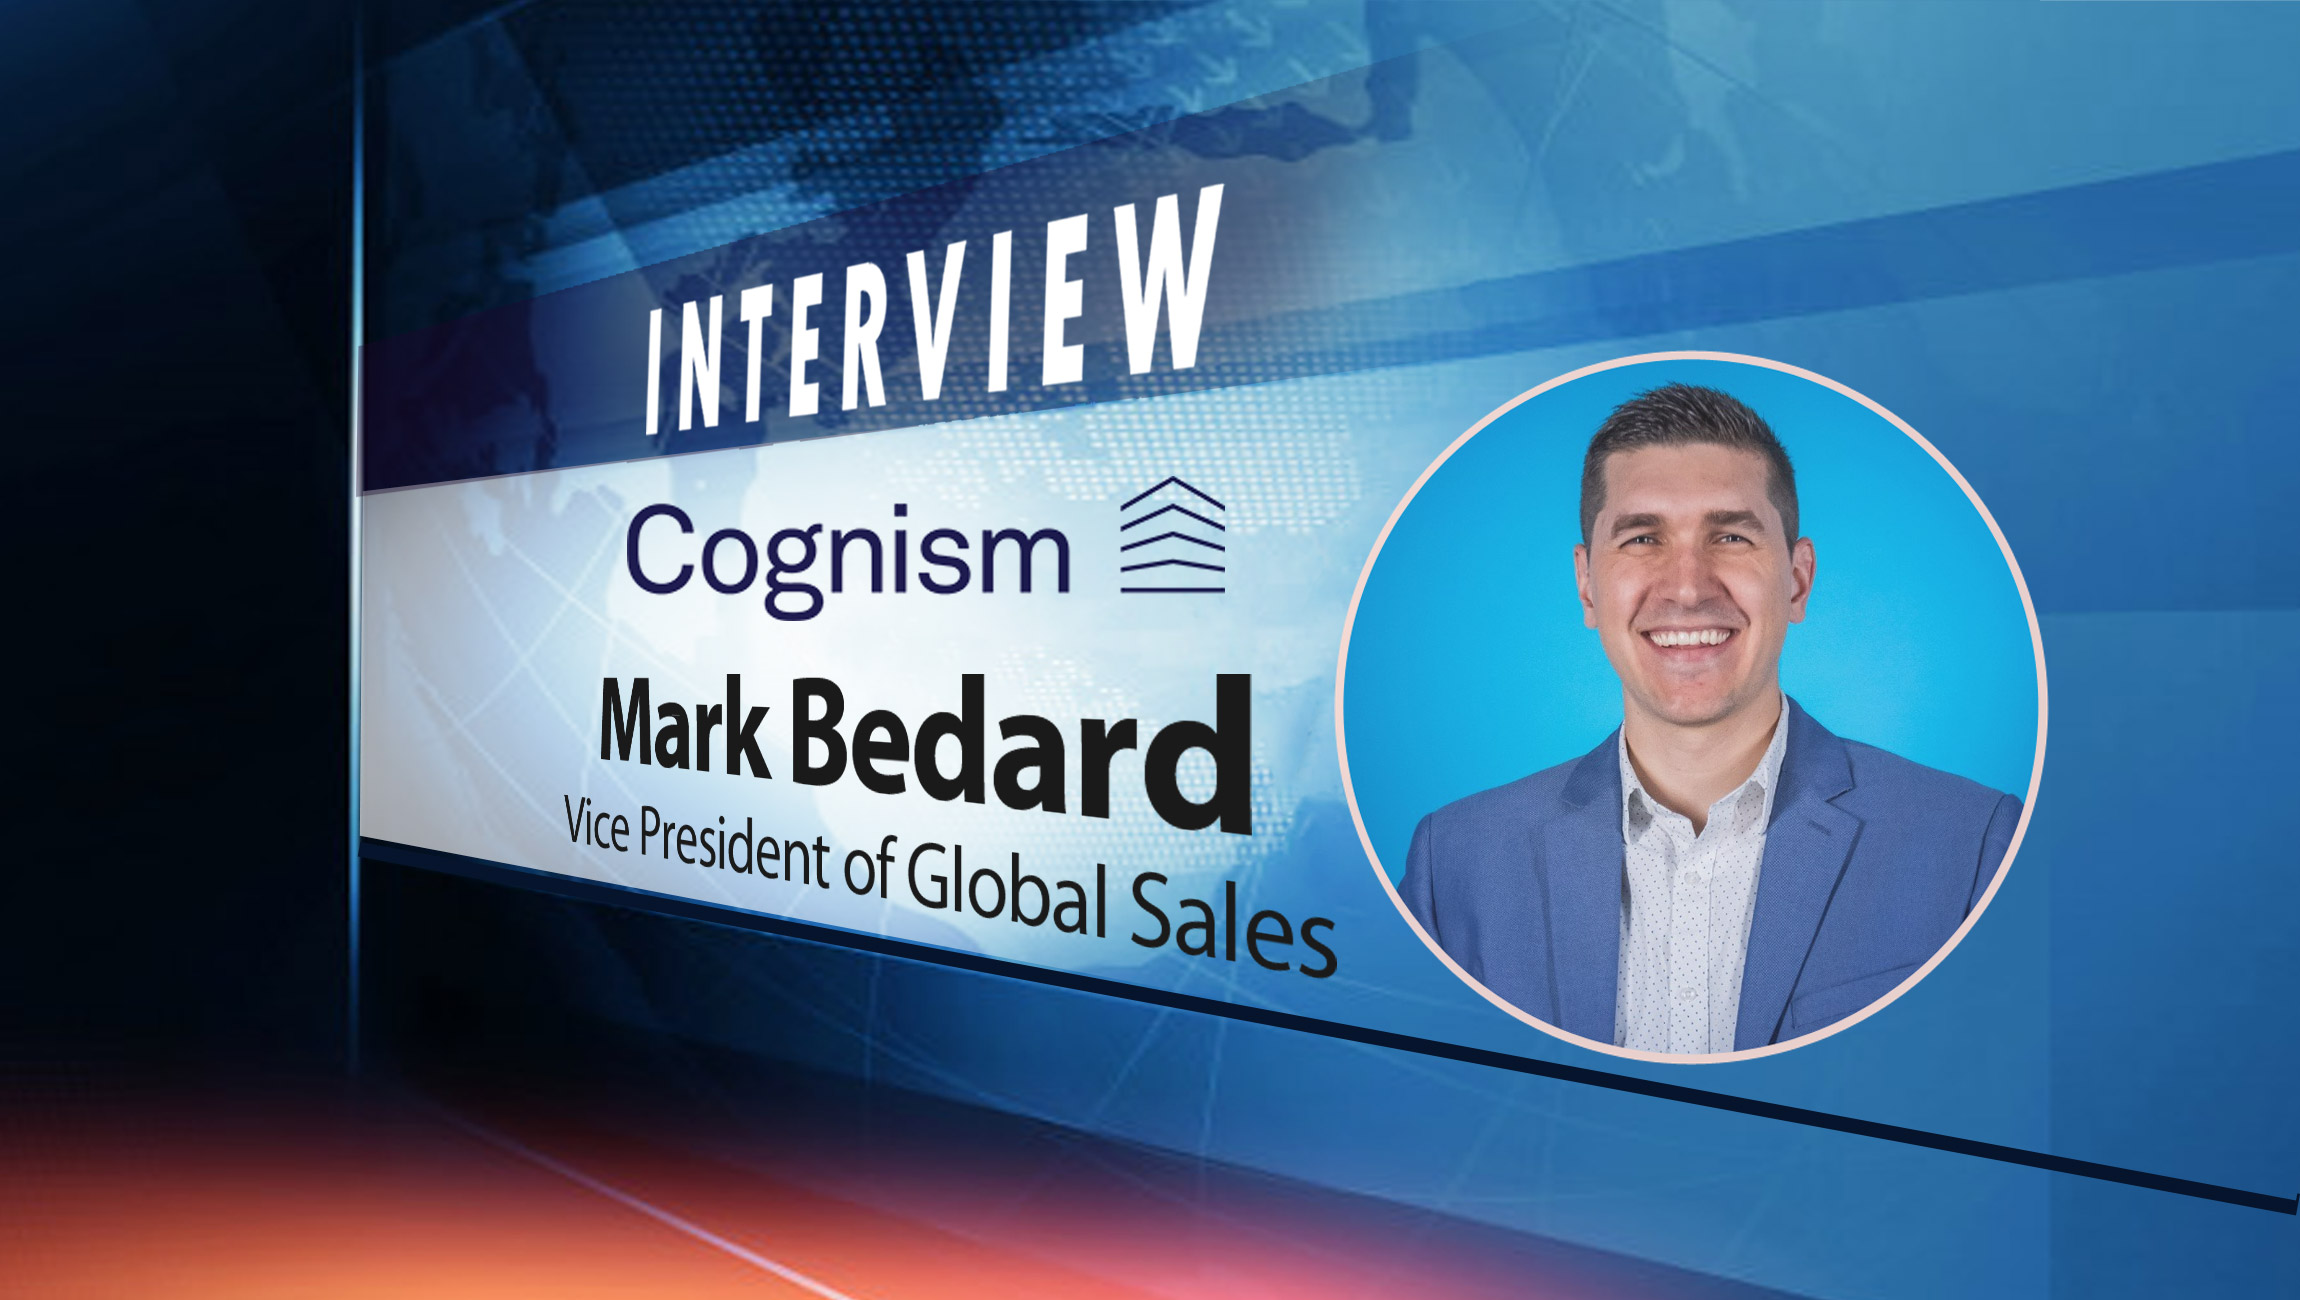 SalesTechStar Interview with Mark Bedard, Vice President of Global Sales at Cognism